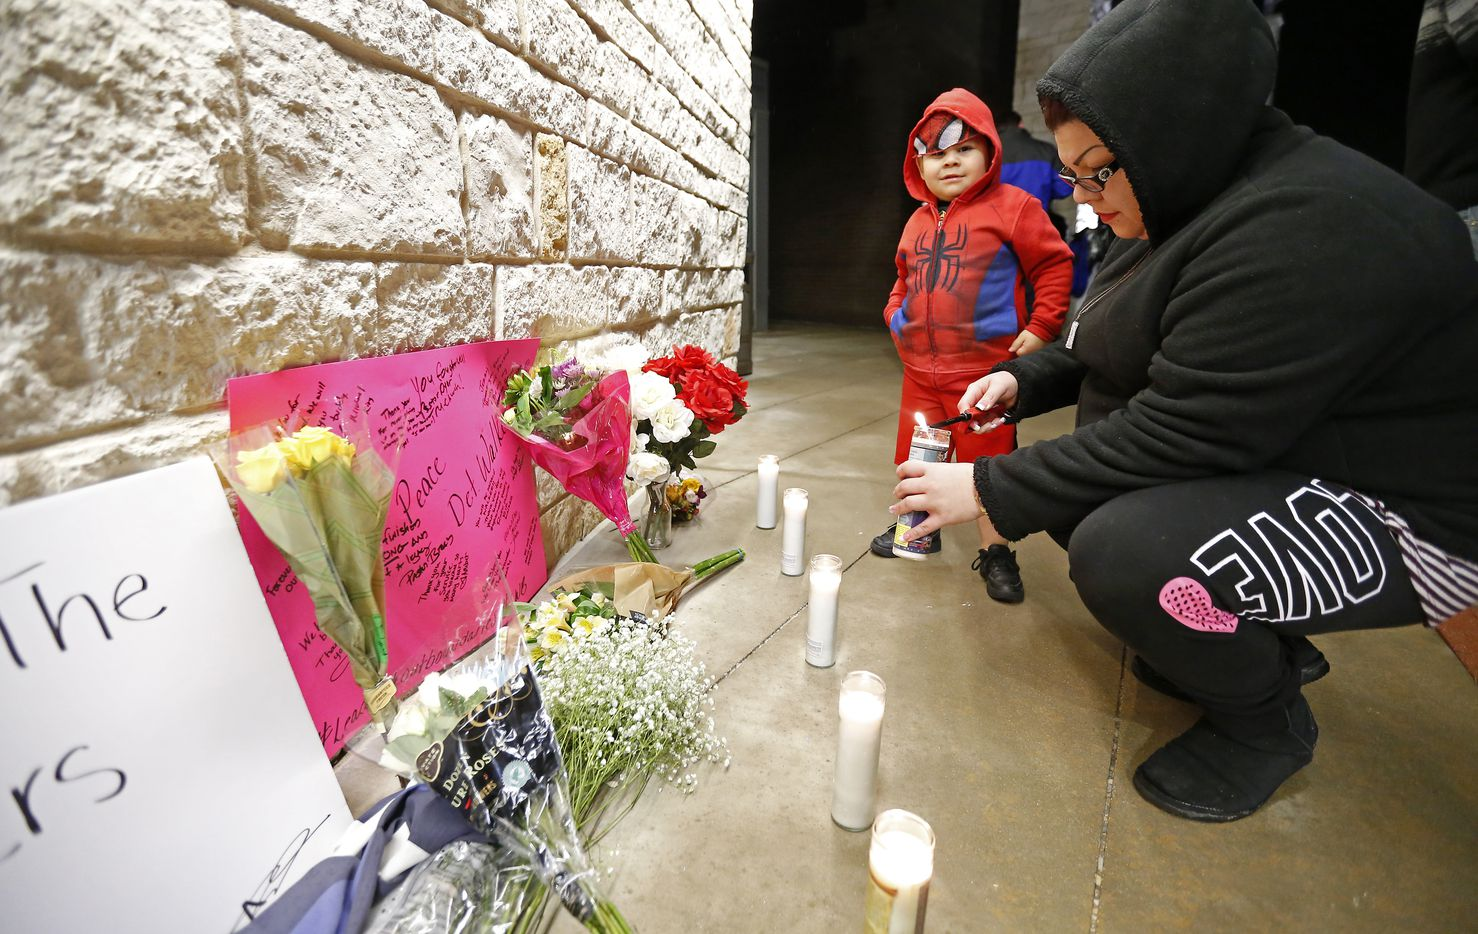 Roxie Murillo lights a candle with her 4-year-old son, Julian Ruiz, at a memorial for Detective Jerry Walker outside the Little Elm police headquarters. (Jae S. Lee/Staff Photographer)